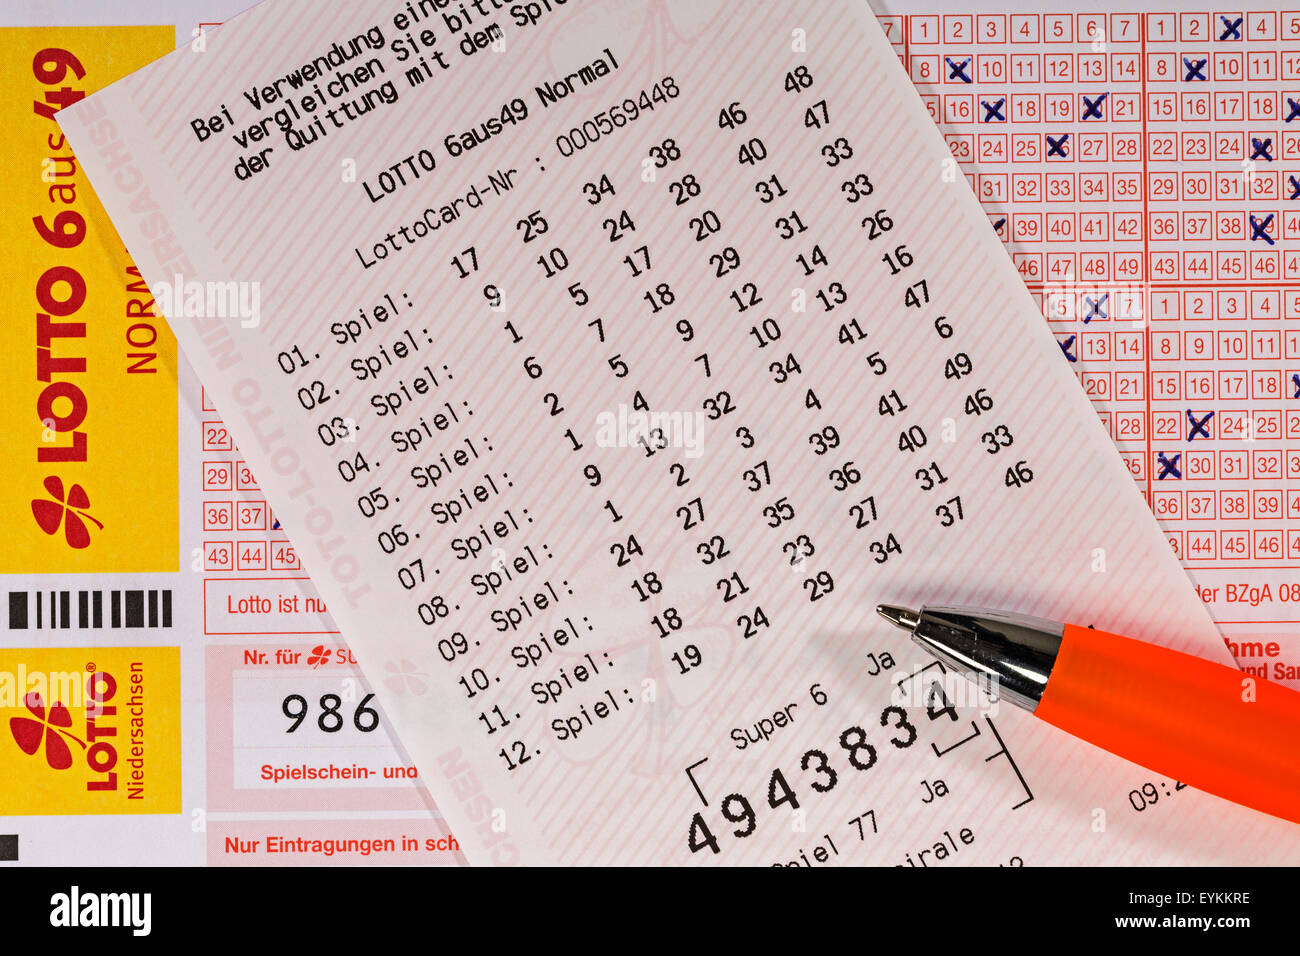 Lottery coupon, fills out, receipt, ballpoint pen, detail, - Stock Image